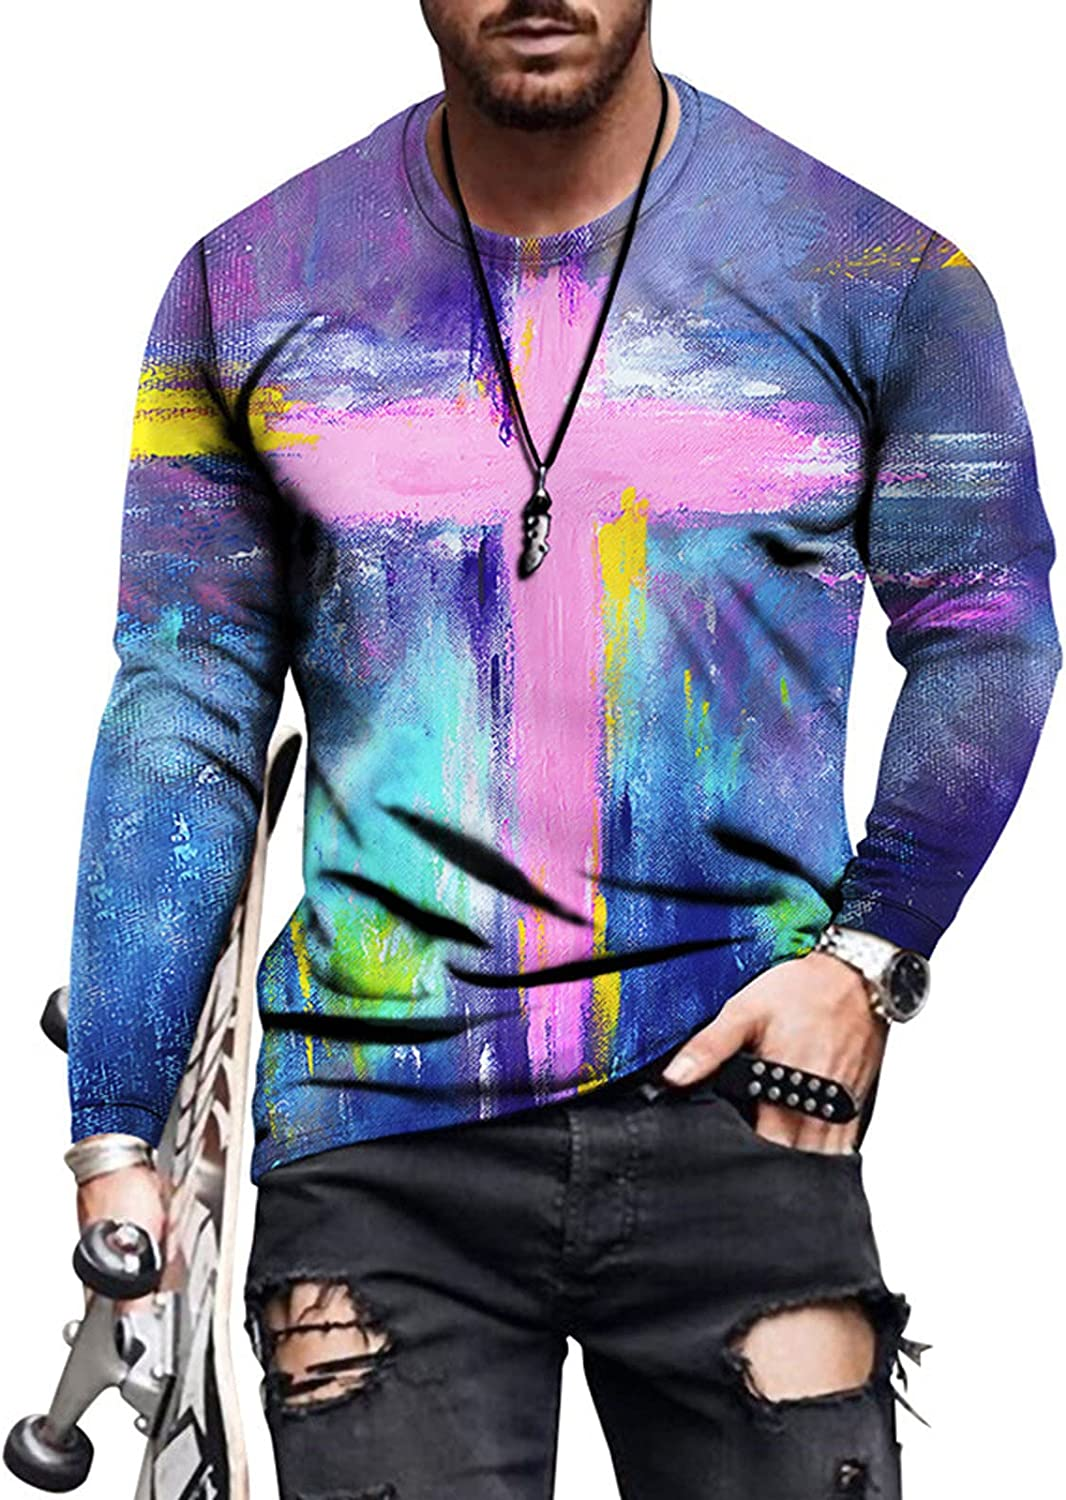 WOCACHI Long Sleeve T-shirts for Mens, Fall Vintage Oil Painting Faith Jesus Cross Print Athletic Workout Tee Tops